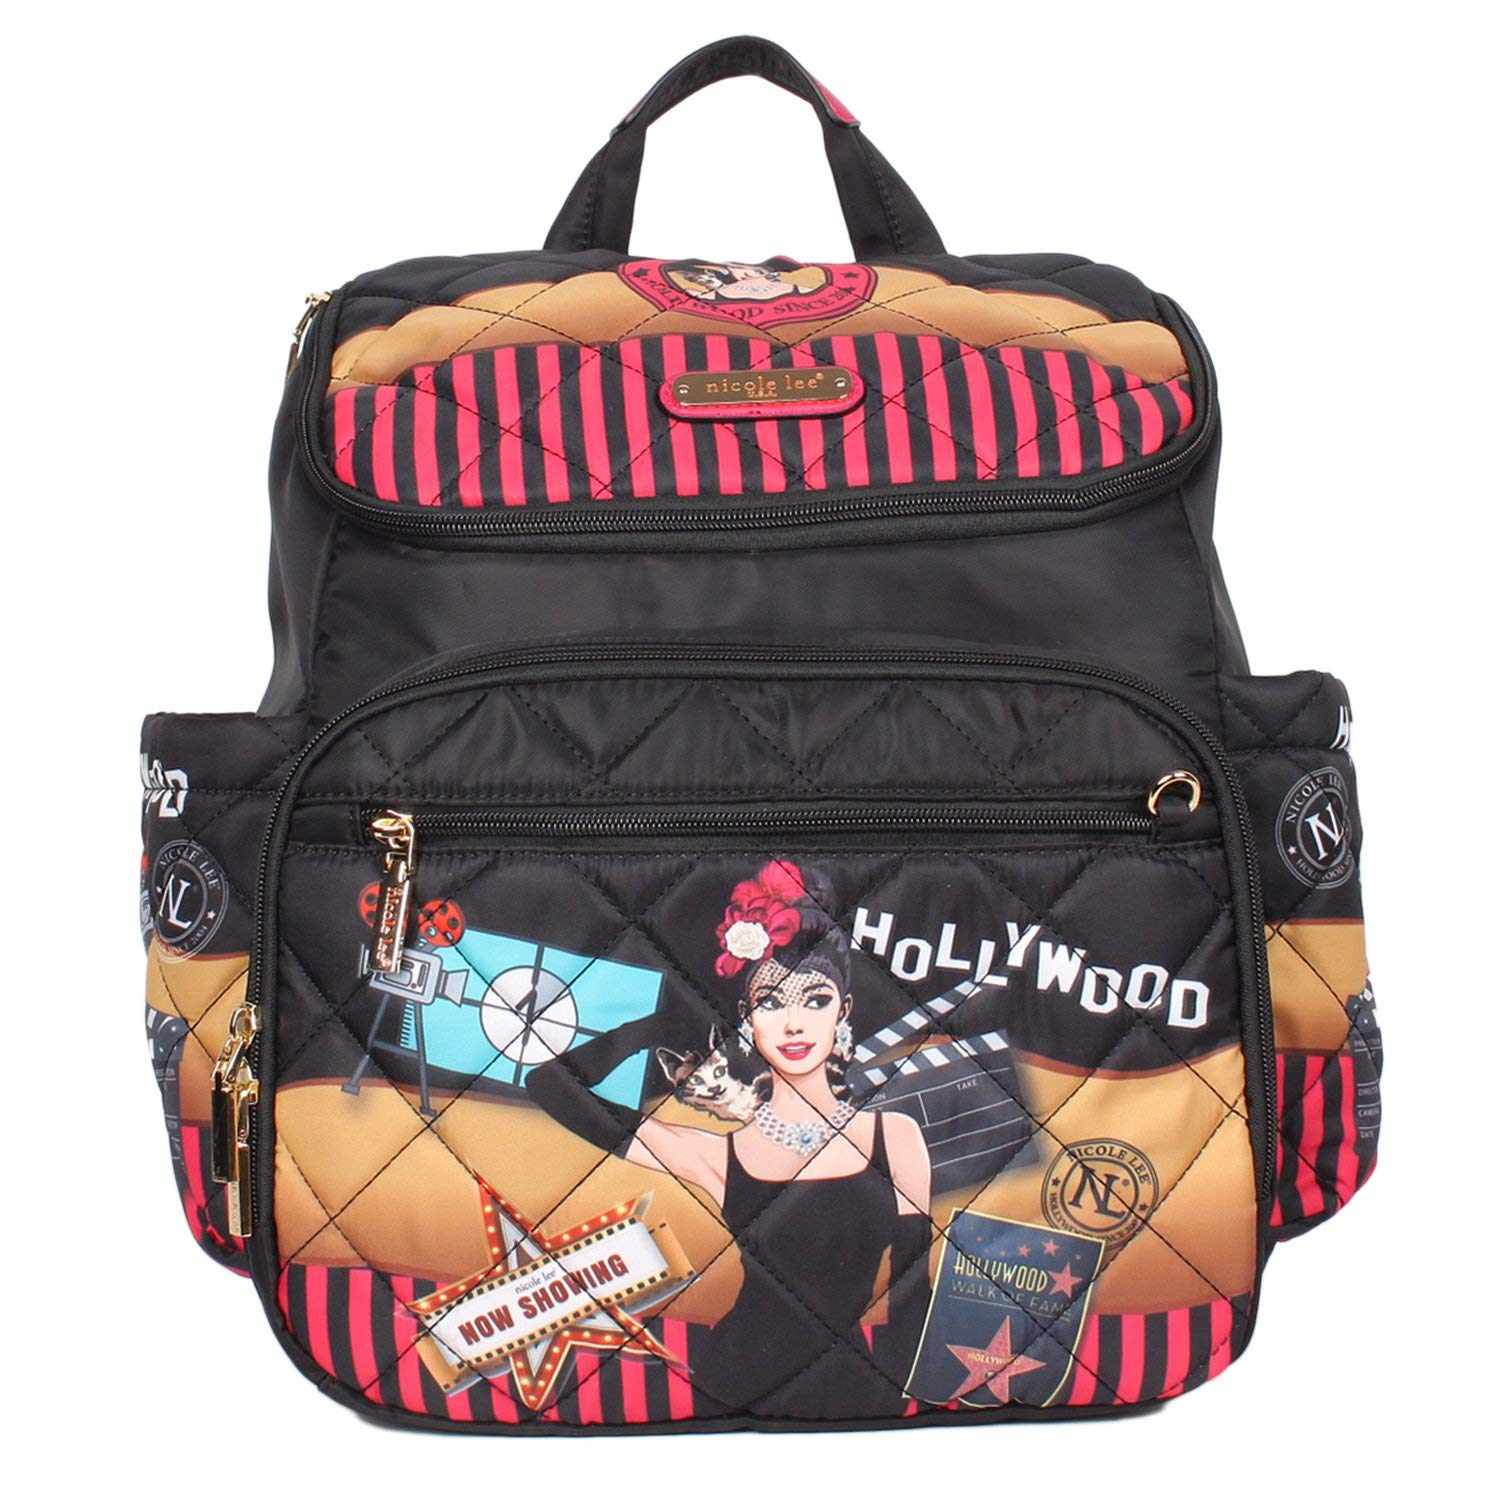 8c55a78730 Buy Nicole Lee Backpack Hollywood in Cheap Price on Alibaba.com